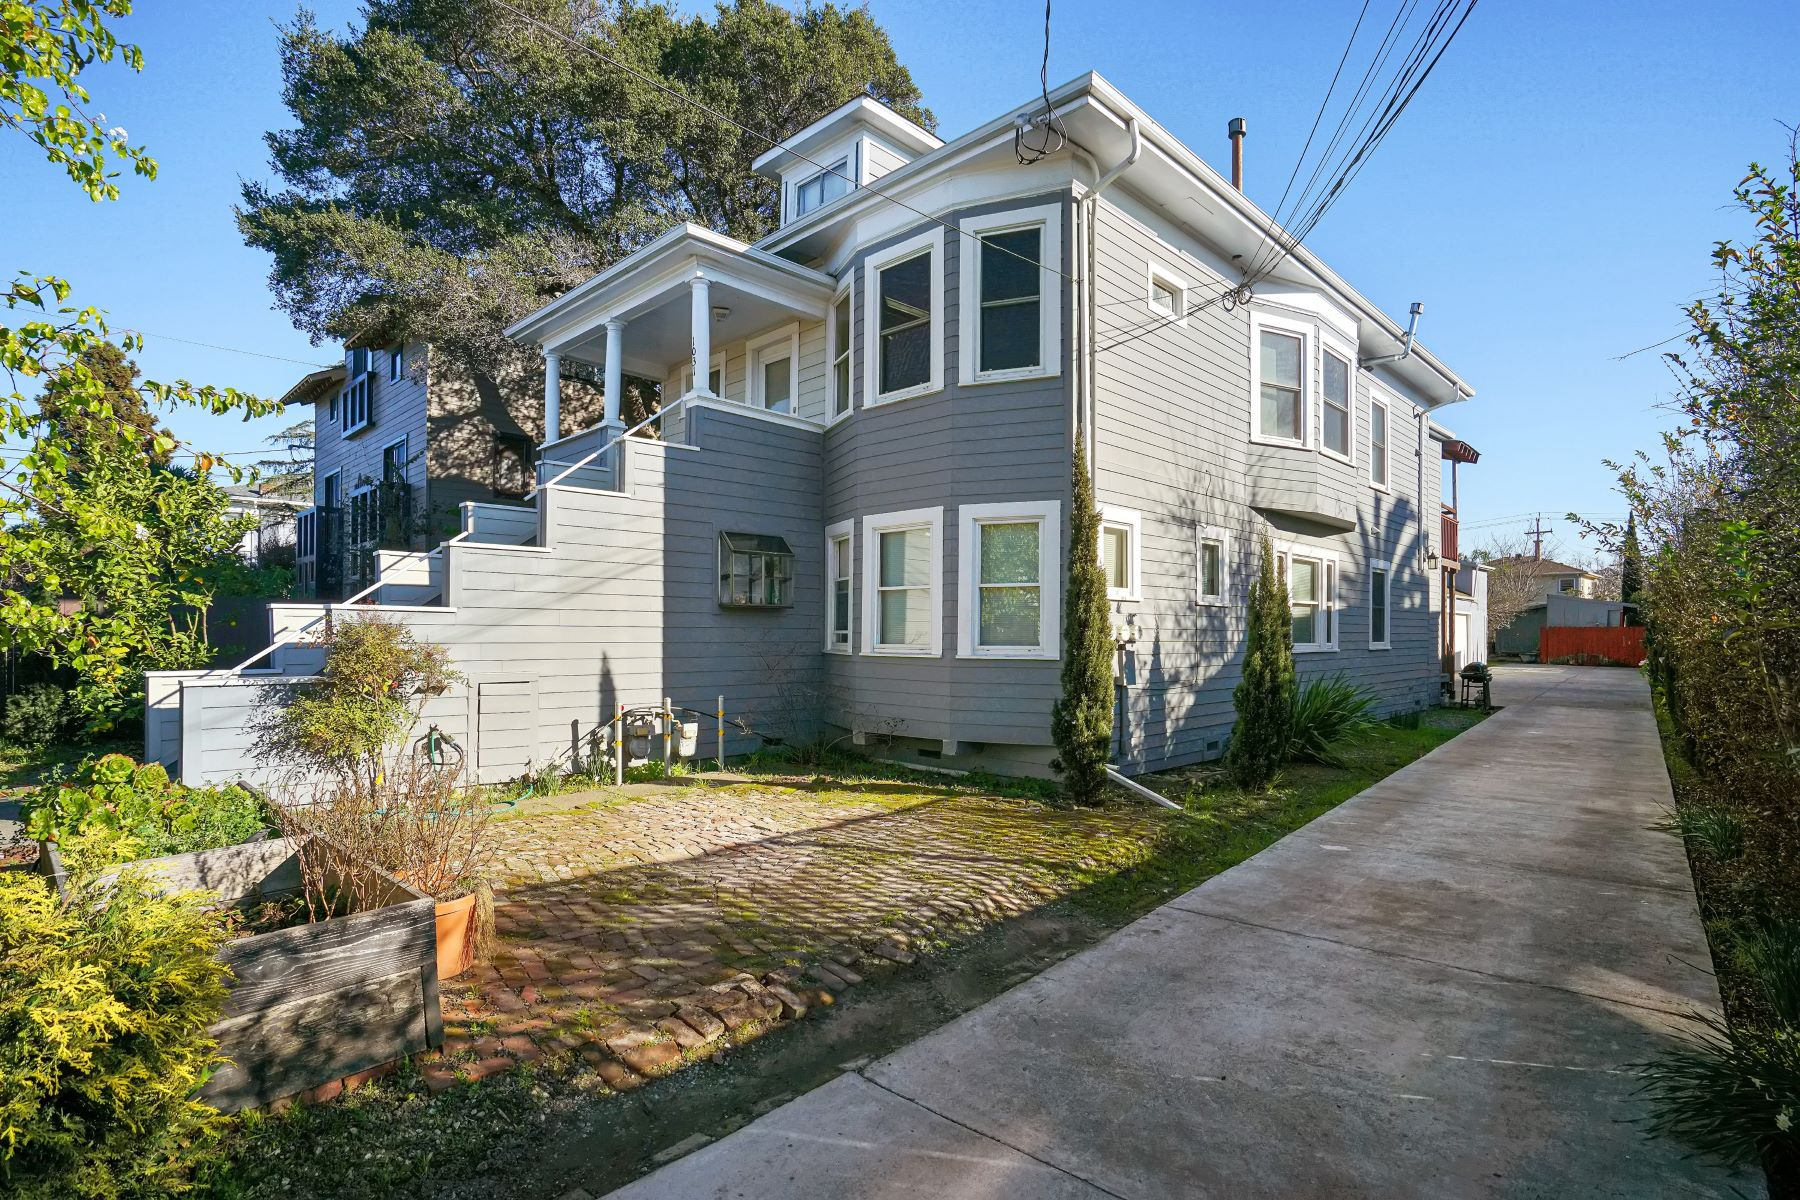 Multi-Family Homes for Sale at Paradise Park Multi-Unit On Massive Lot 1031 62nd Street Oakland, California 94608 United States